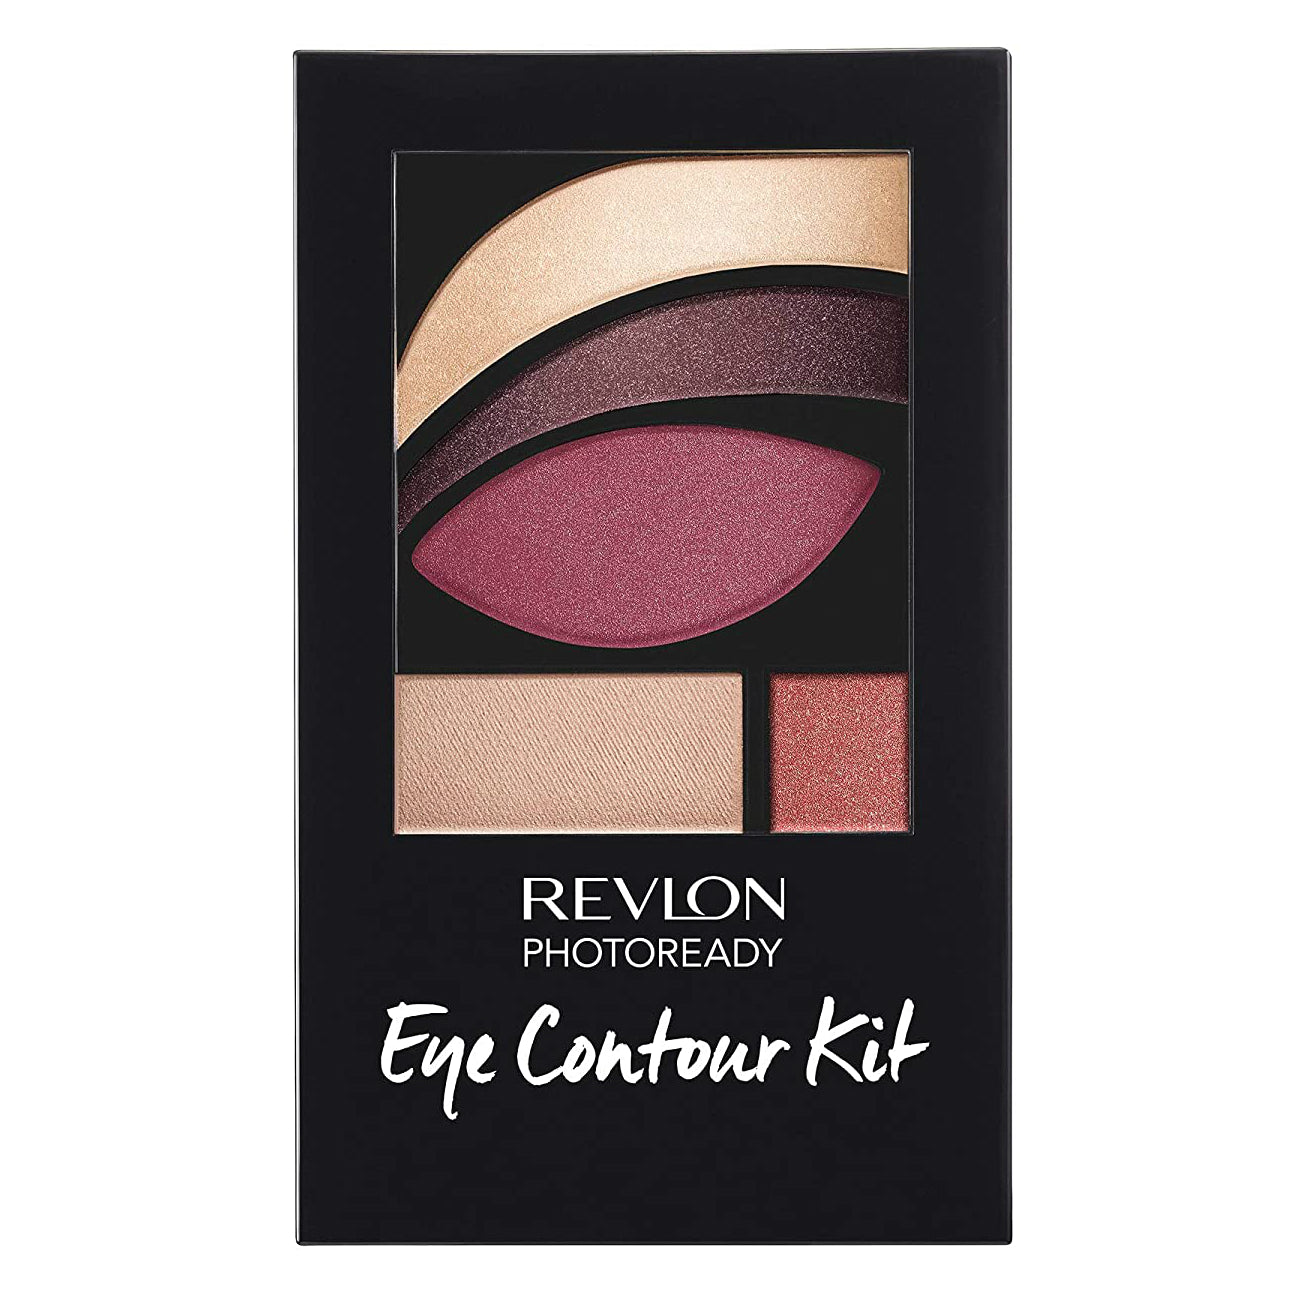 Revlon Photoready Eye Contour Kit | Romanticism 540